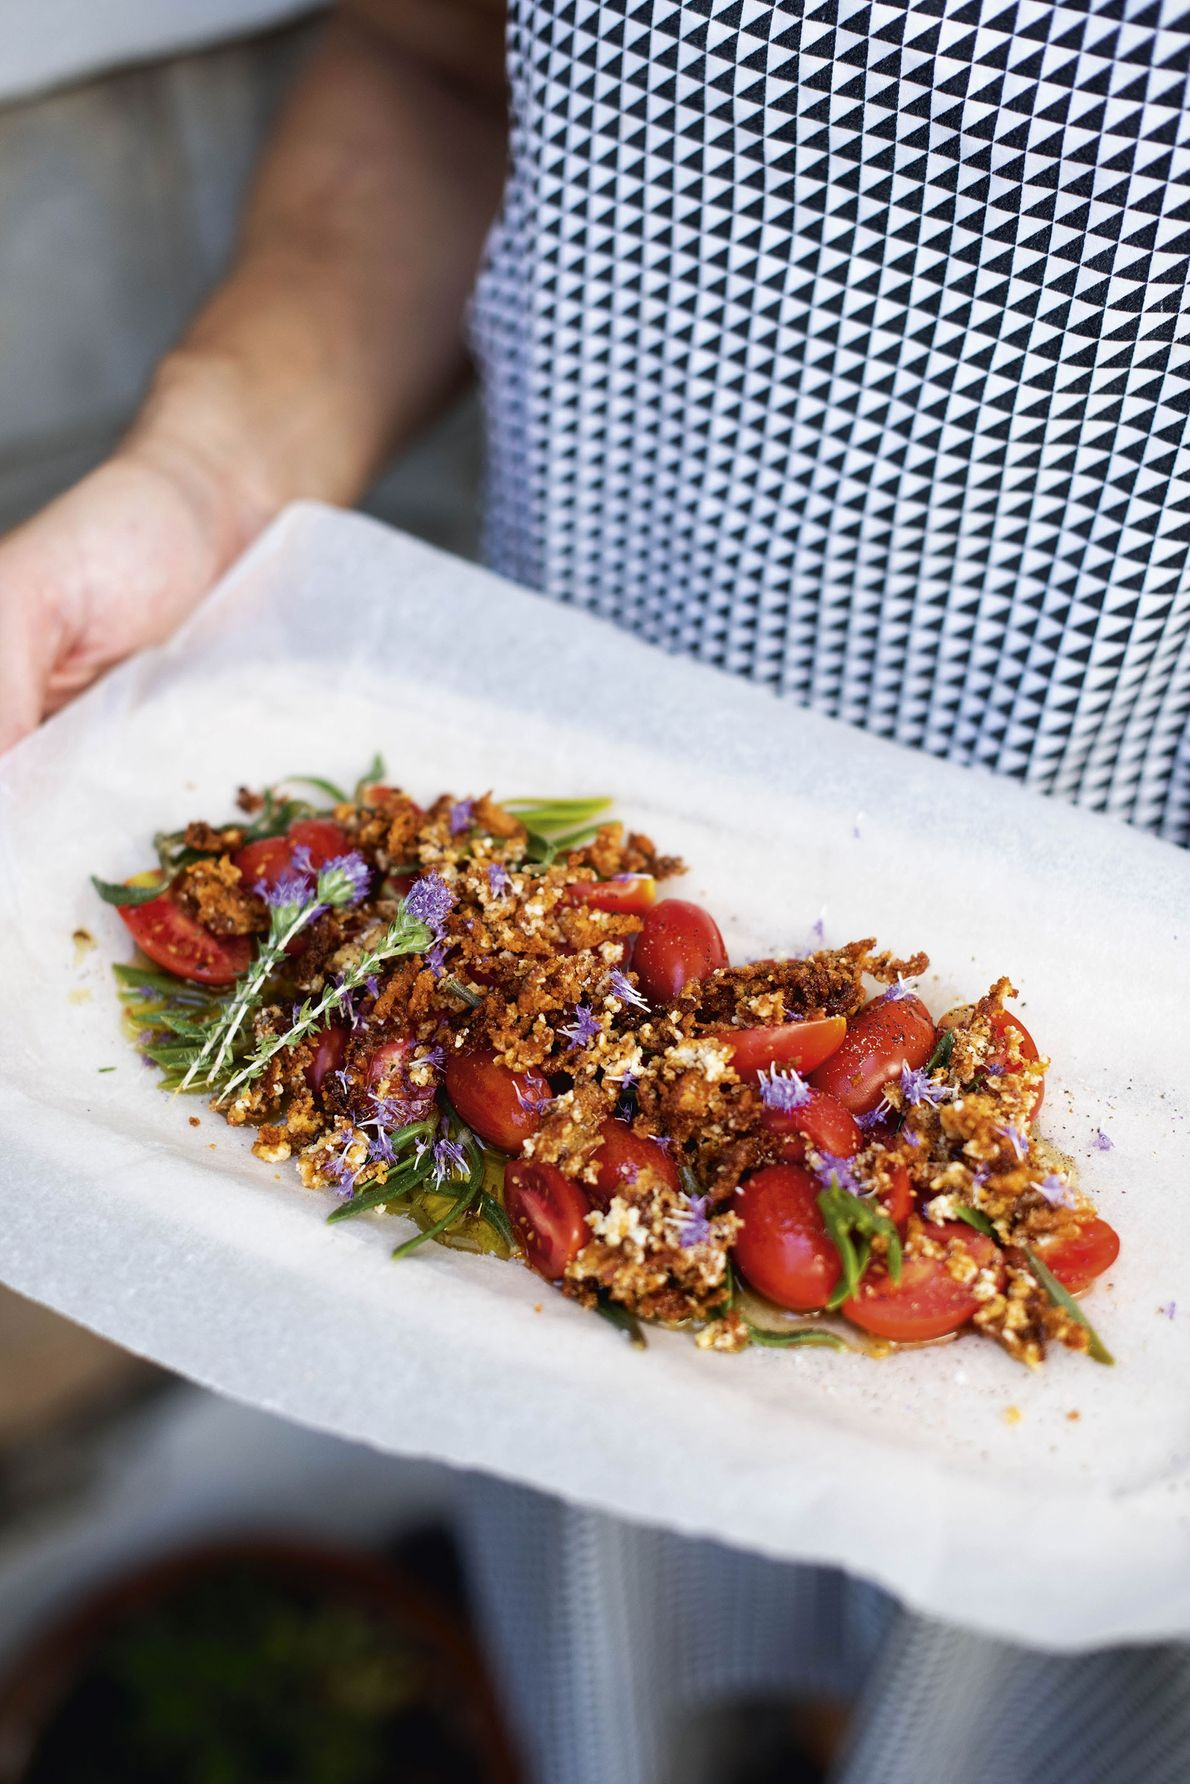 Fried manoura with cherry tomatoes and thyme flowers, served at Zoi and Alberto's home.